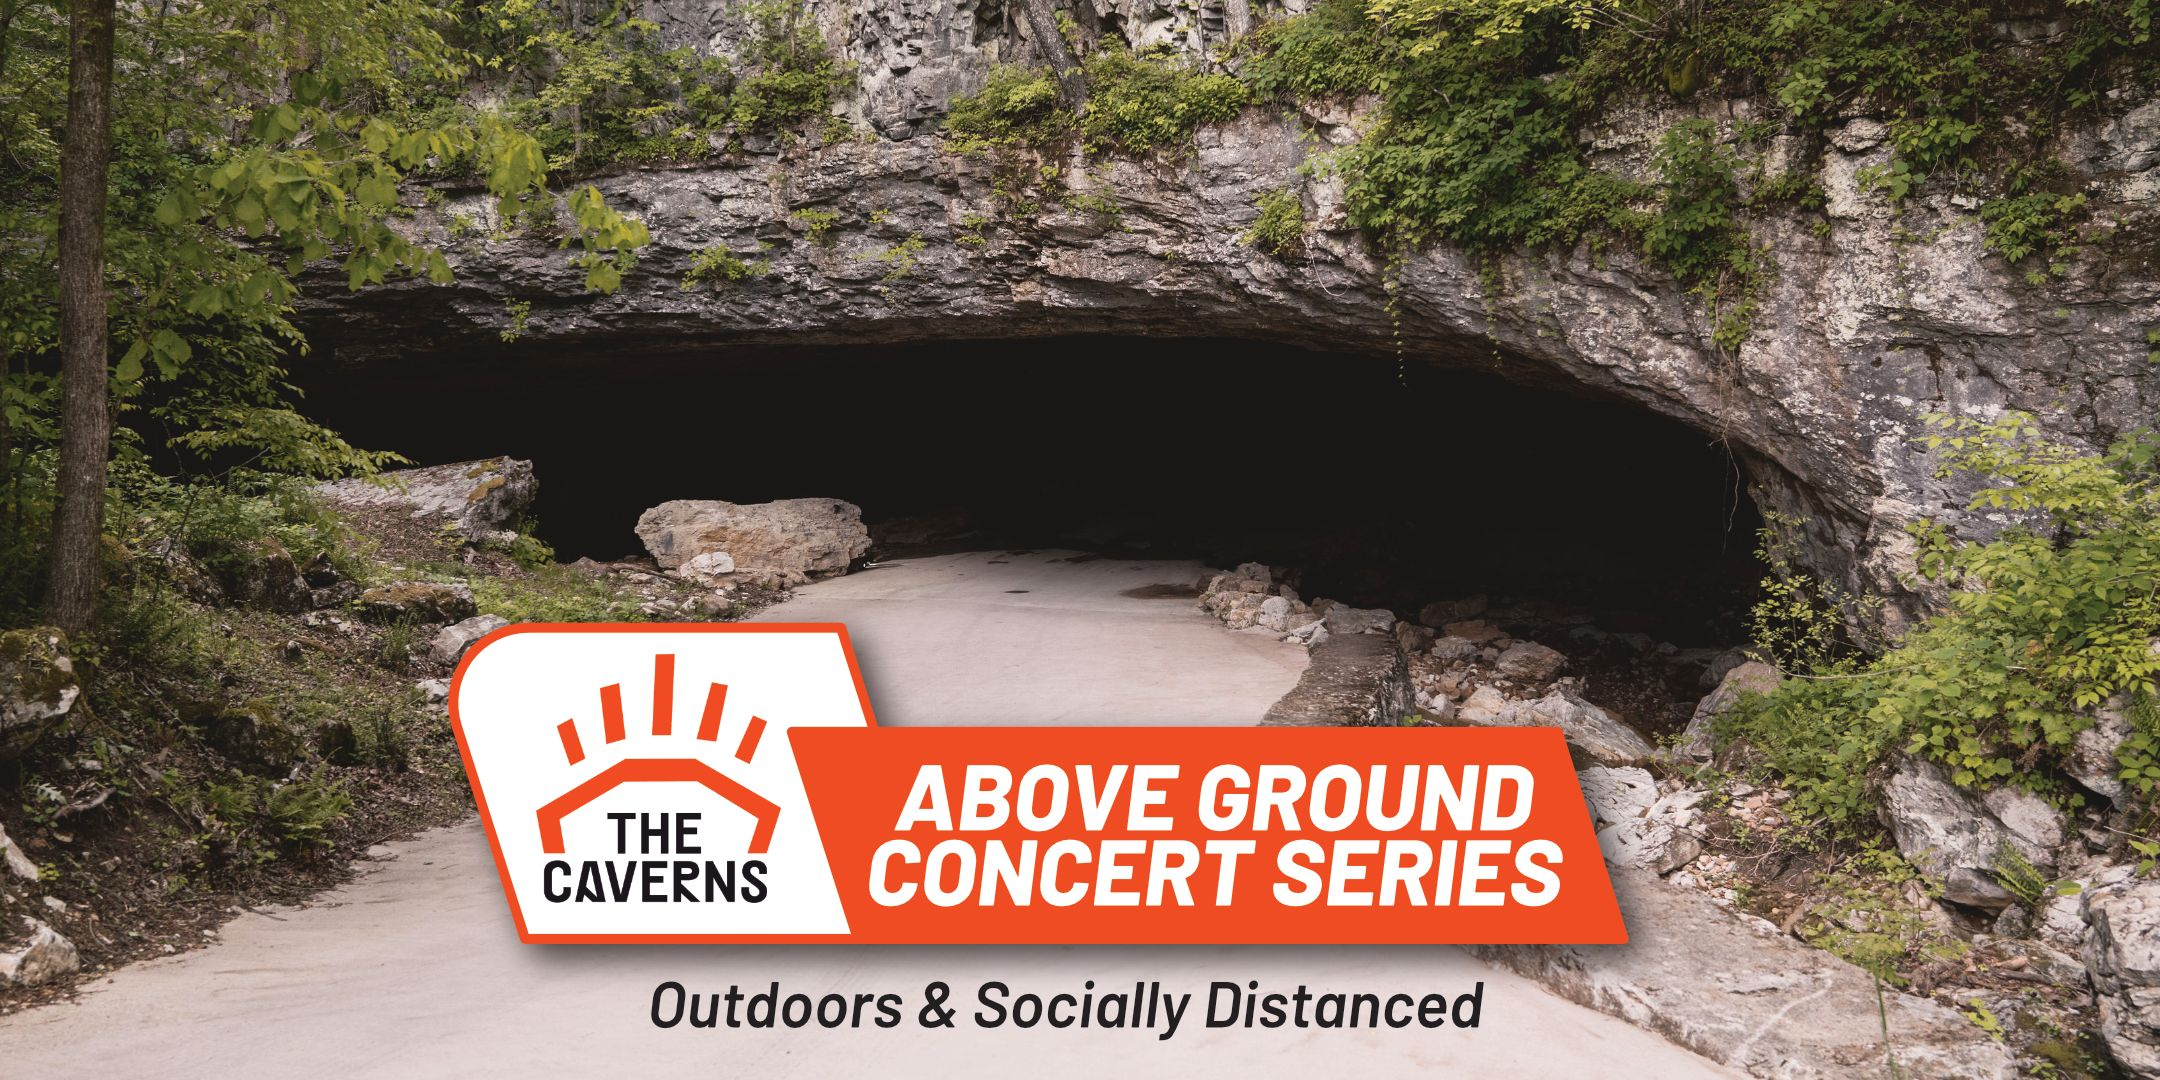 The Caverns Above Ground Concert Series